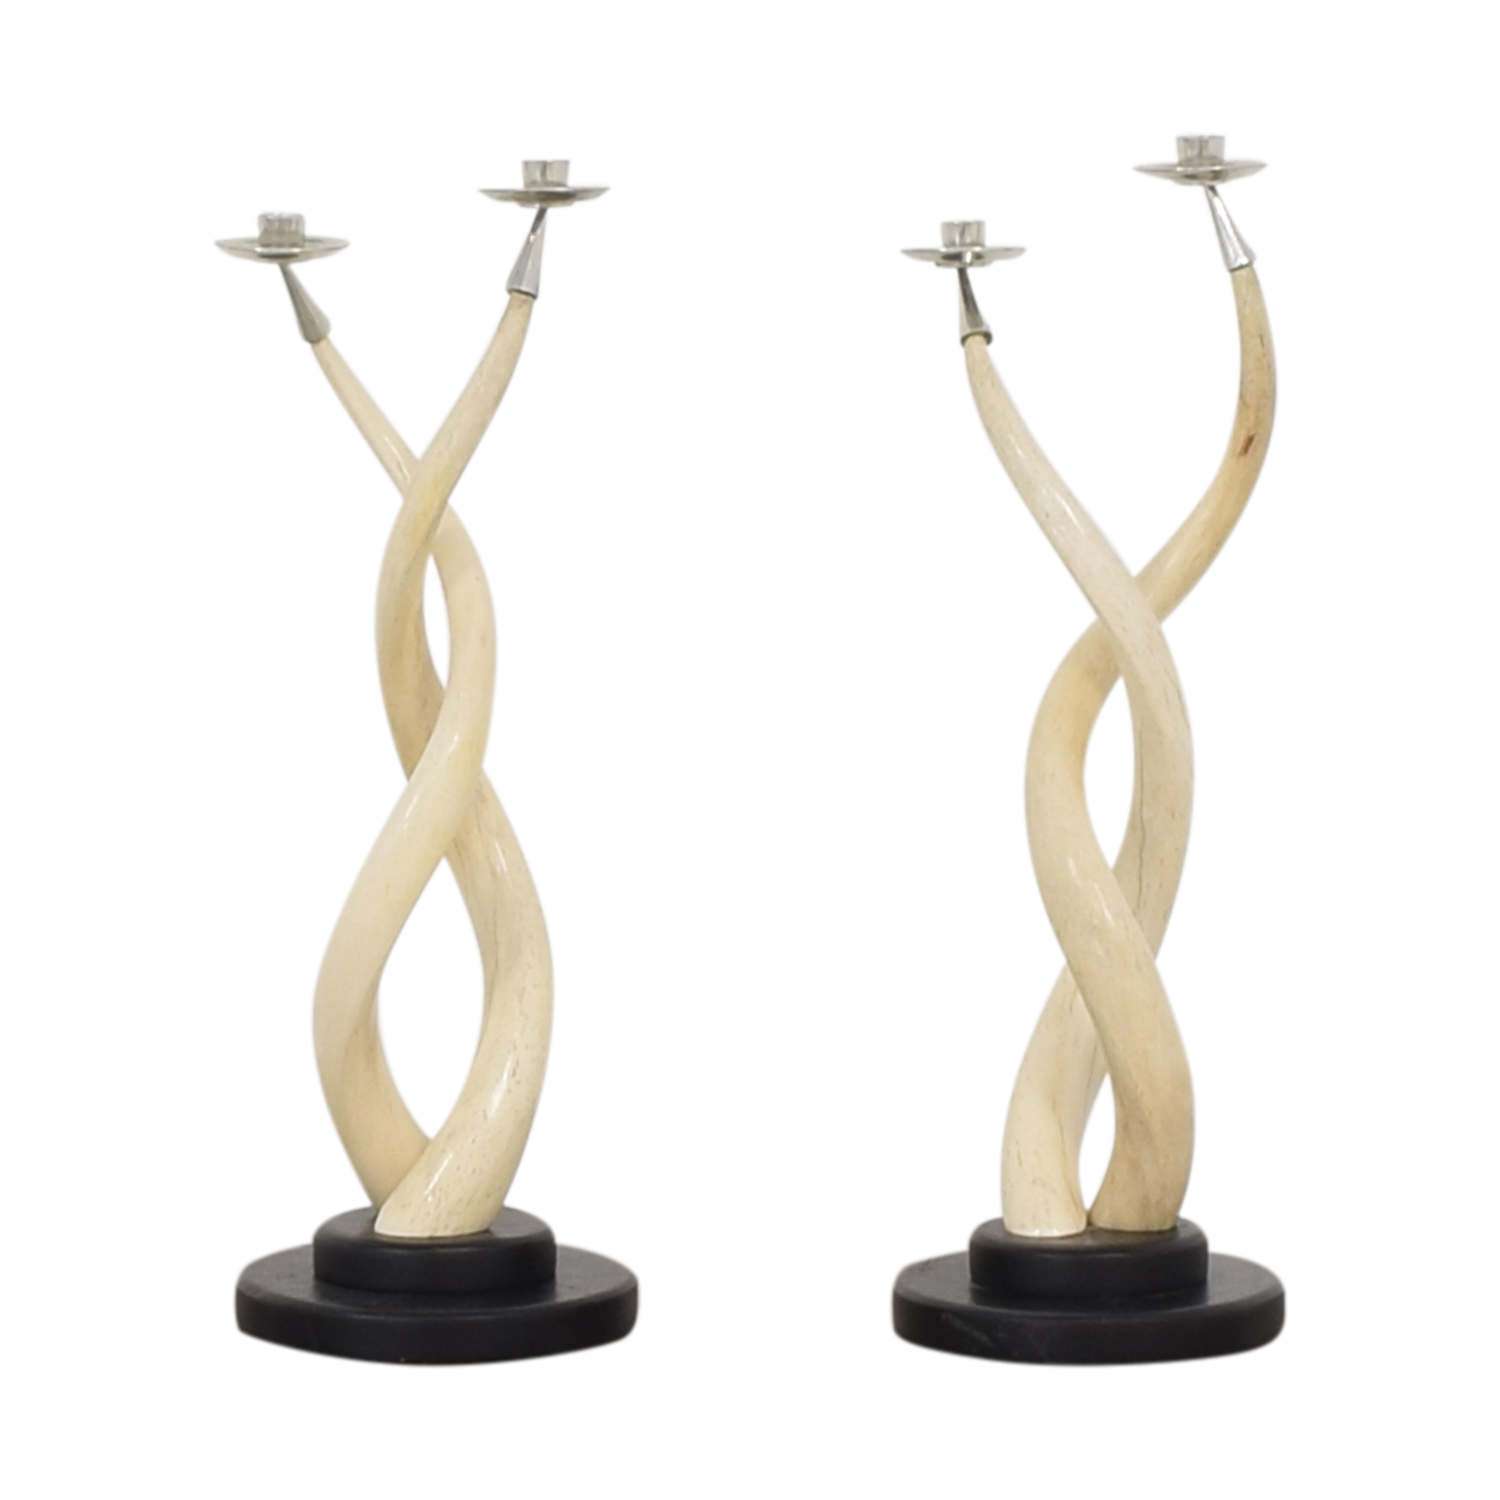 Twisted Horn Candlesticks second hand